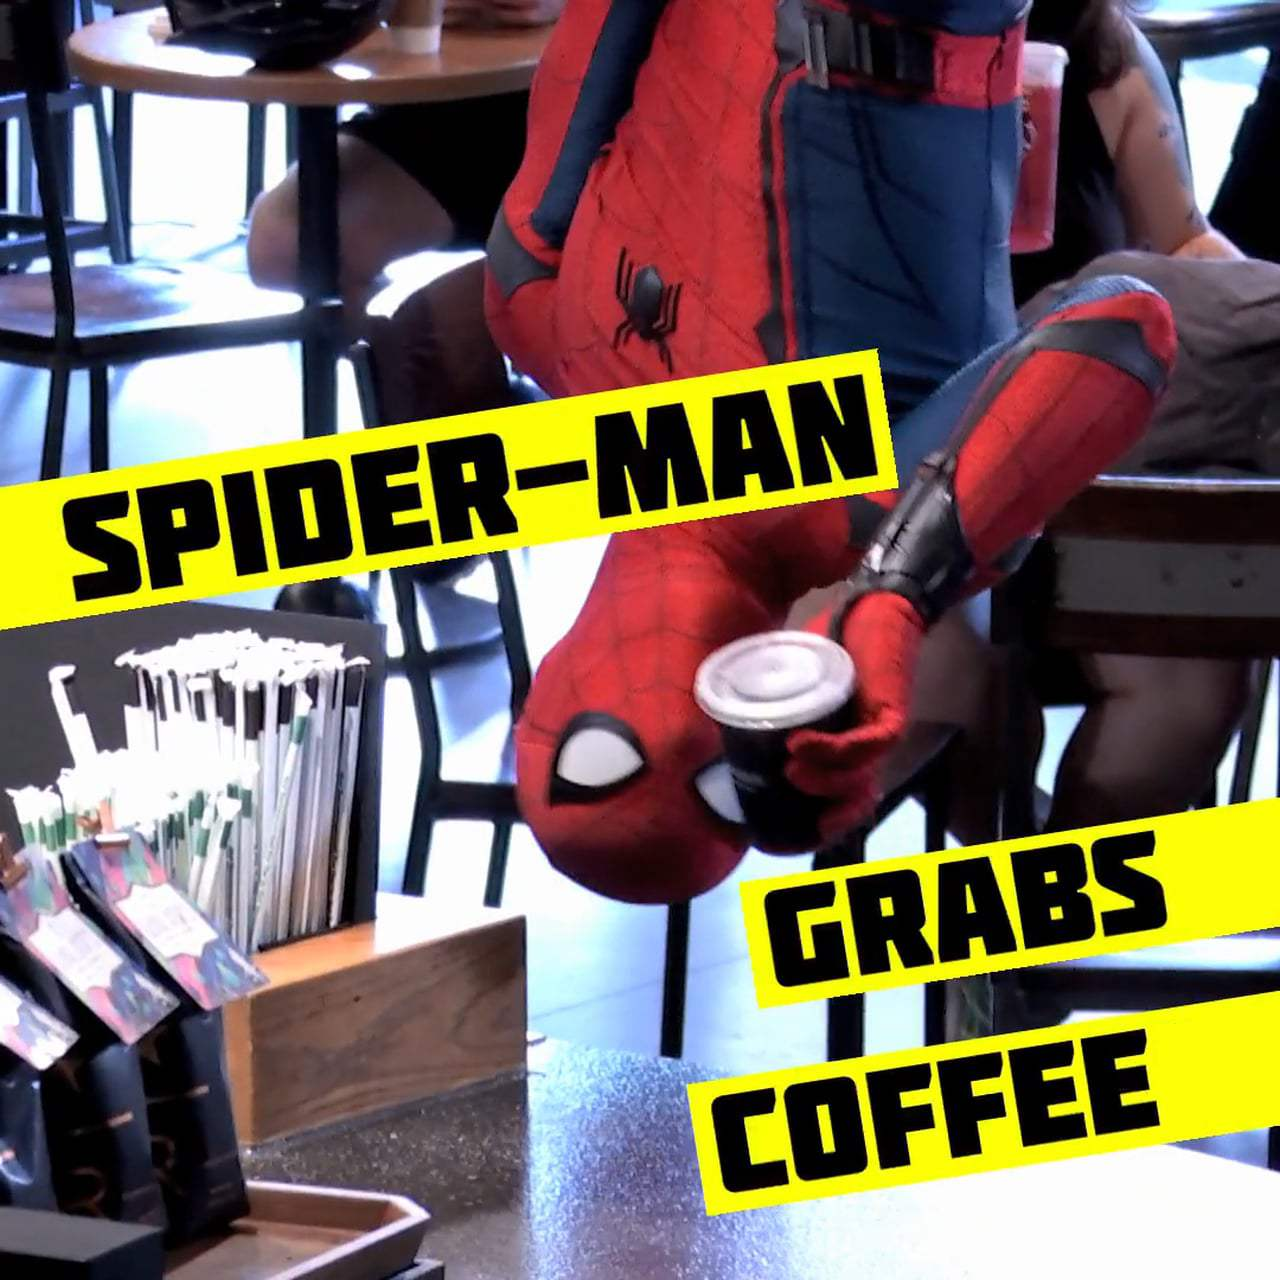 Spider-Man: Homecoming Viral - New York City Starbucks (2017)